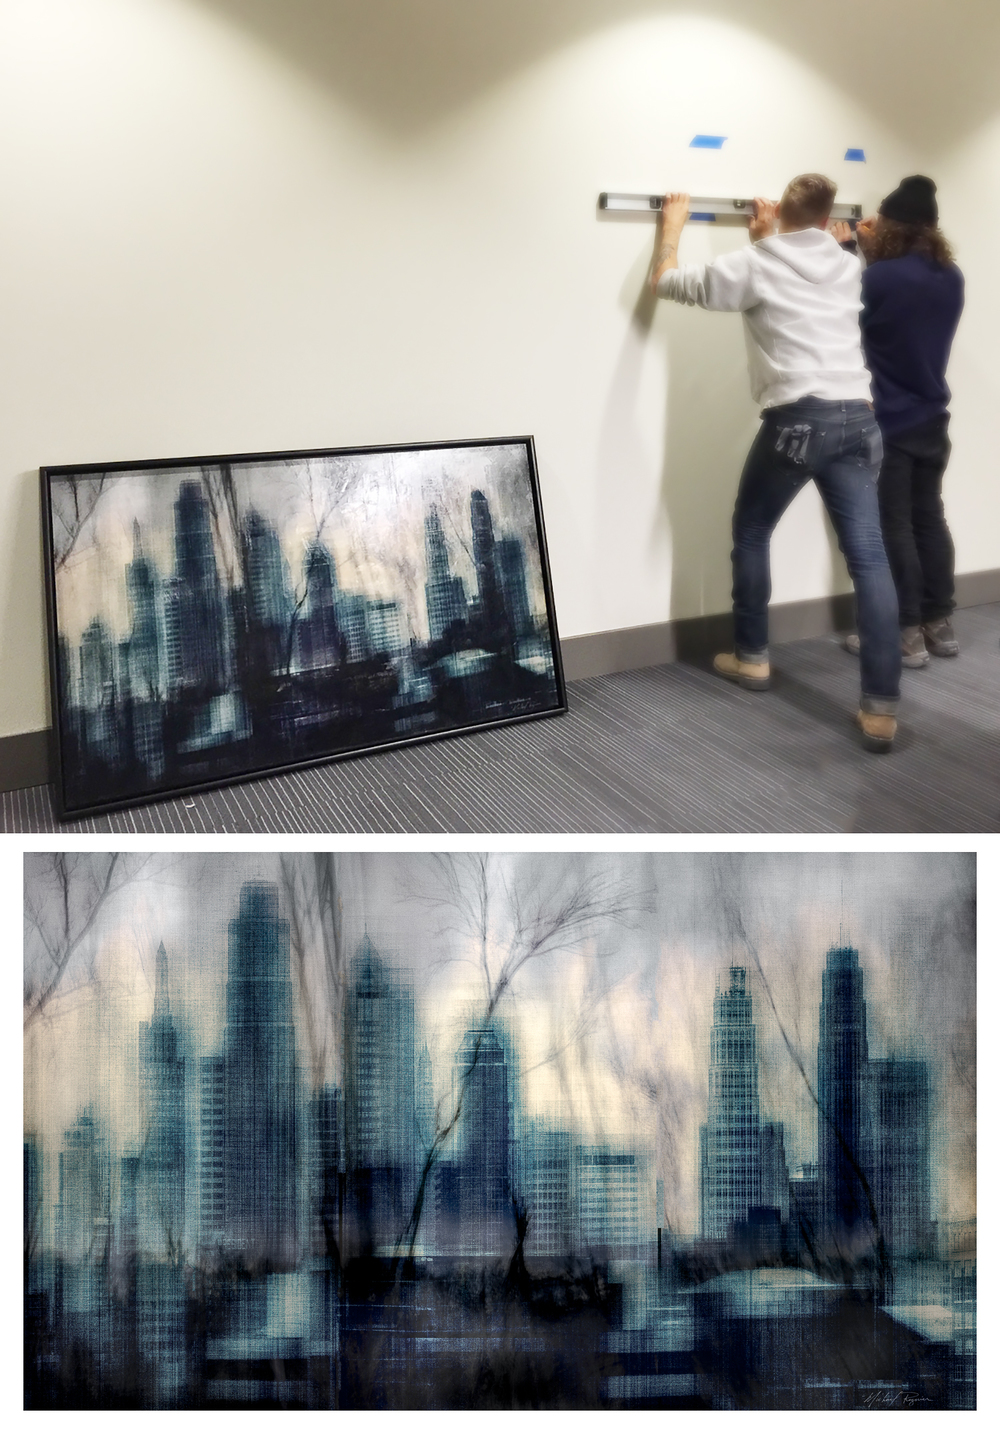 Conference room, Abstract Skyline